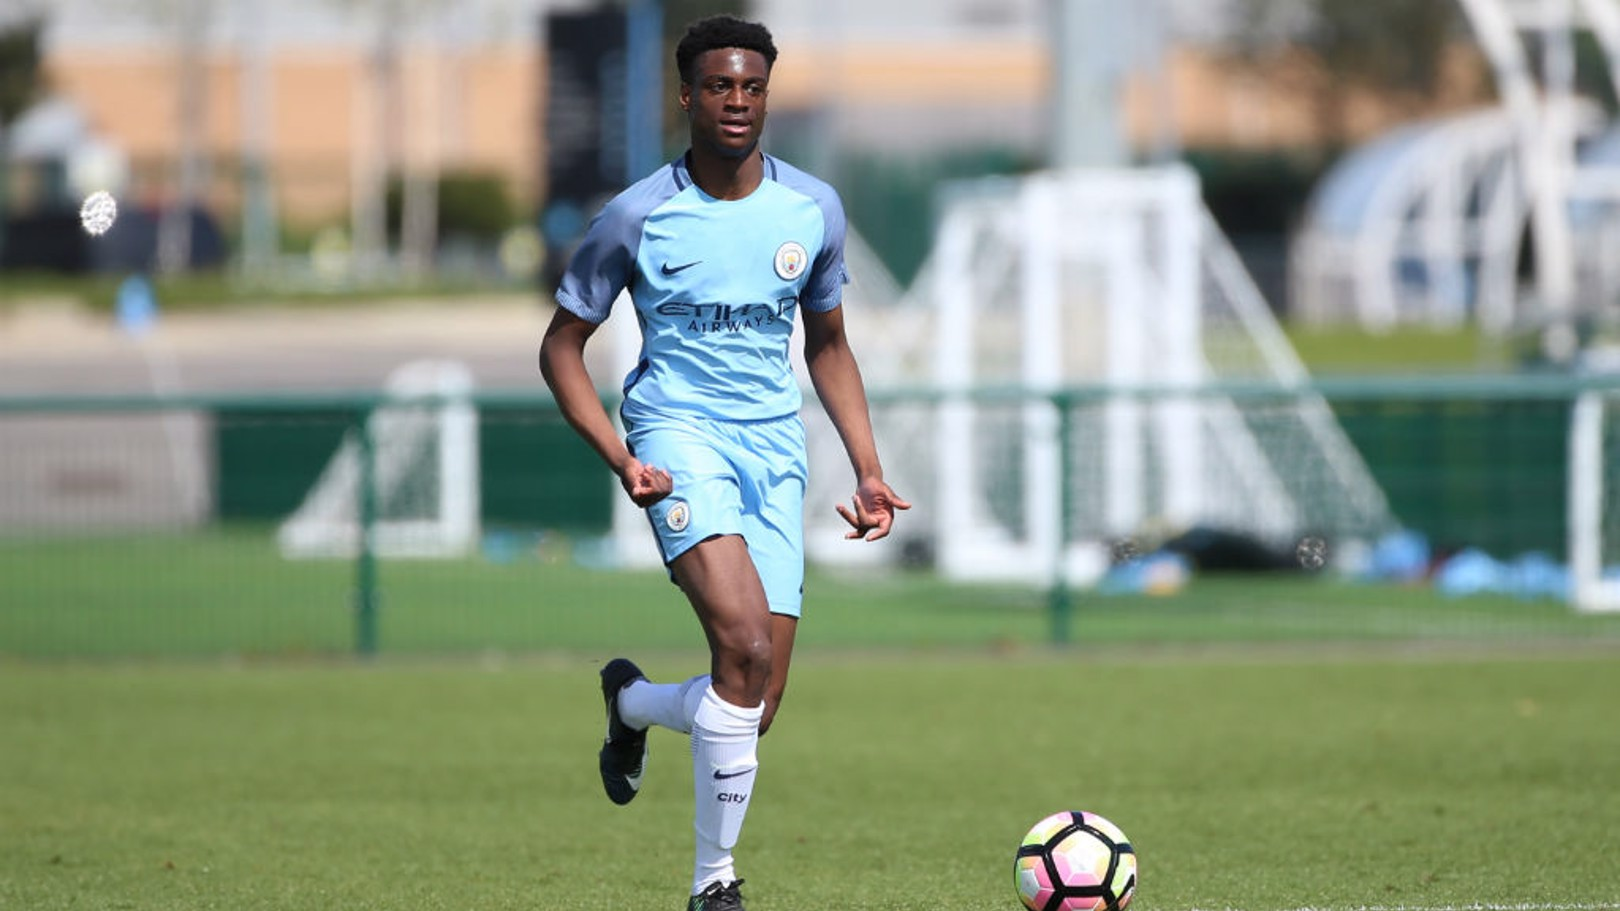 OGBETA: City's defender will be important against Liverpool